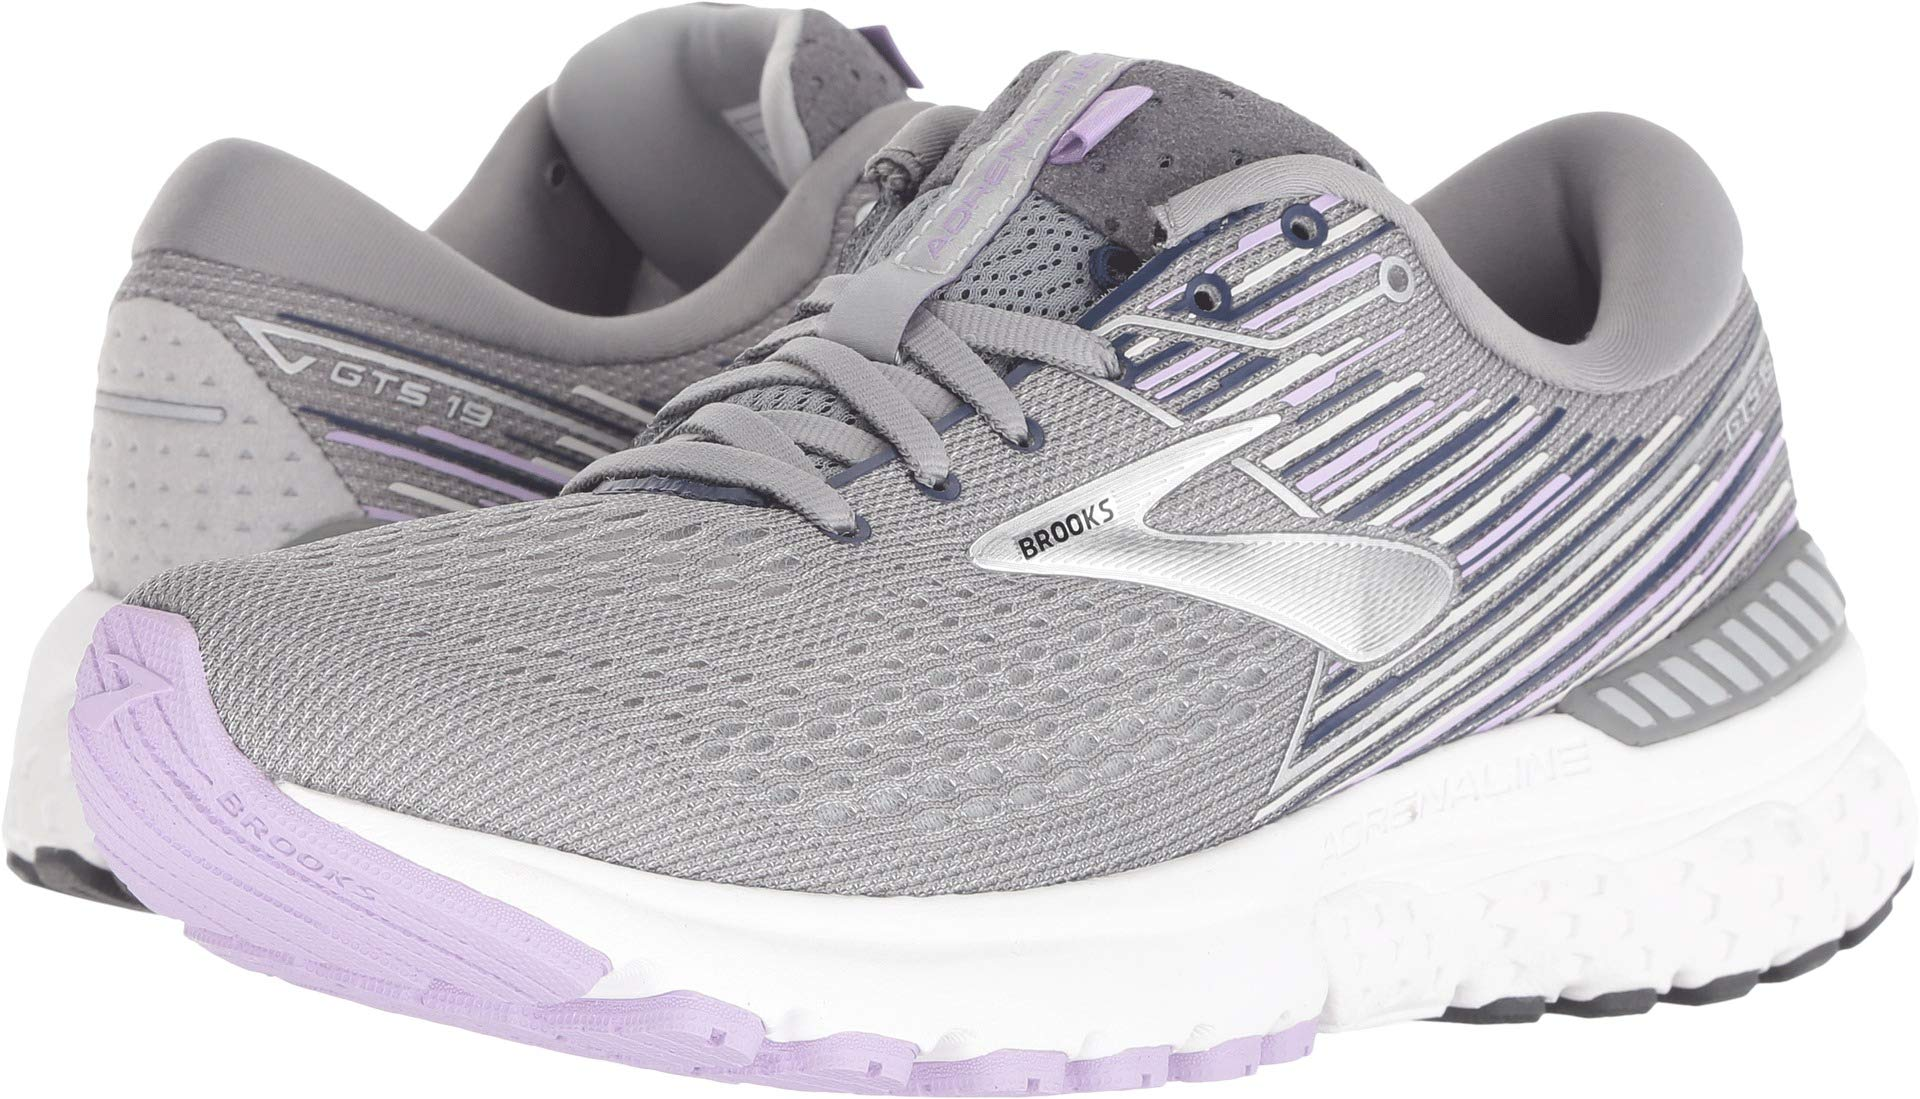 Brooks Women's Adrenaline GTS 19 Grey/Lavender/Navy 5.5 B US by Brooks